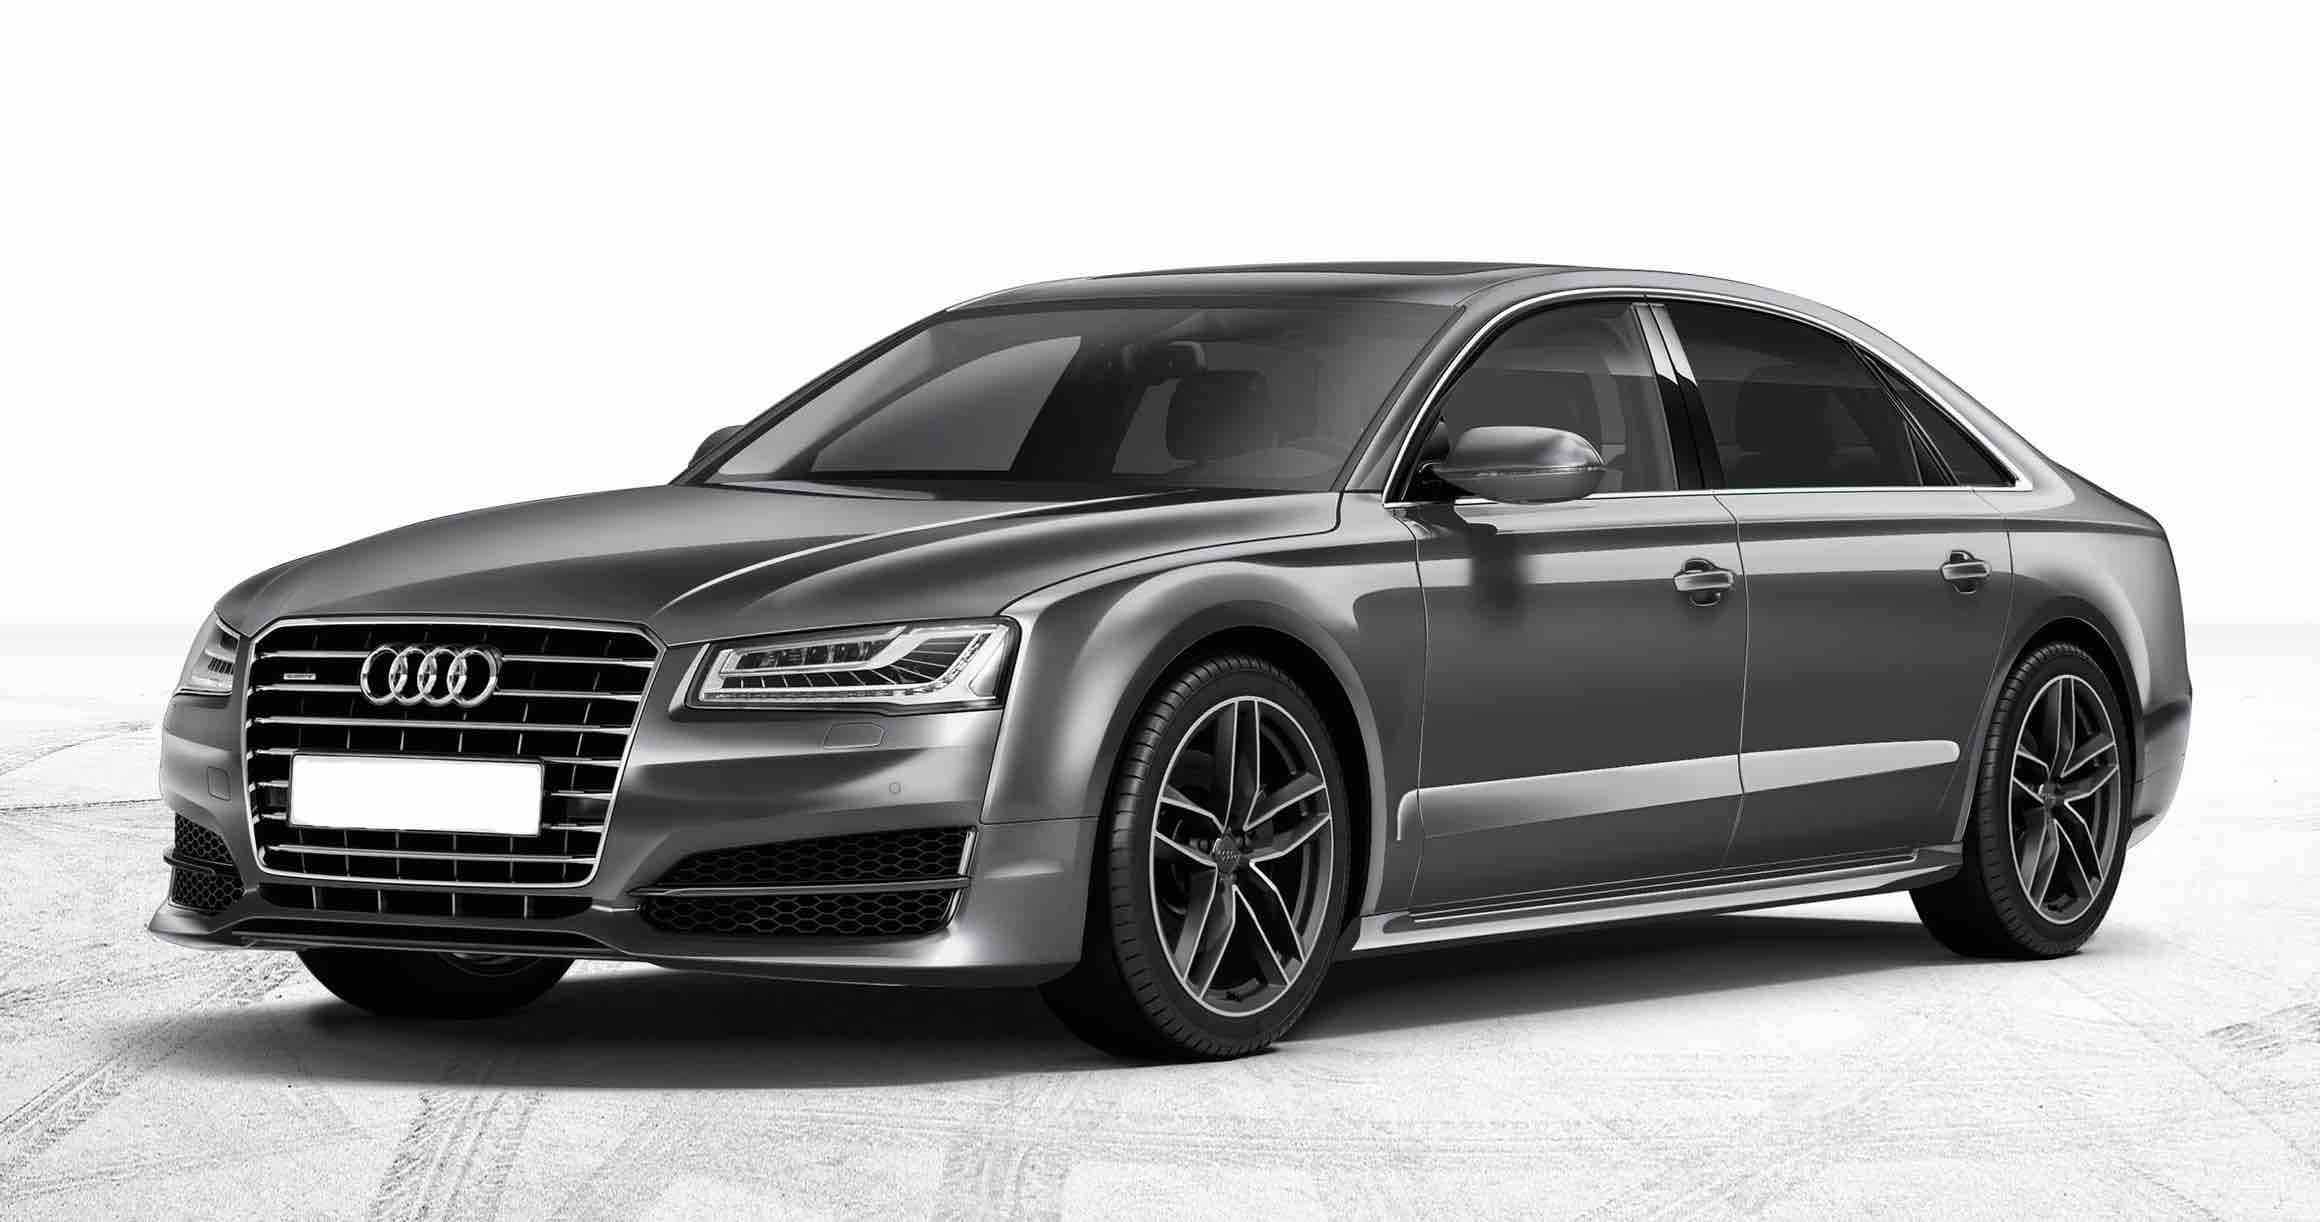 Luxury-in-motion-chauffeur-service-surrey-our-vehicles-audi-a8-main-image.jpg